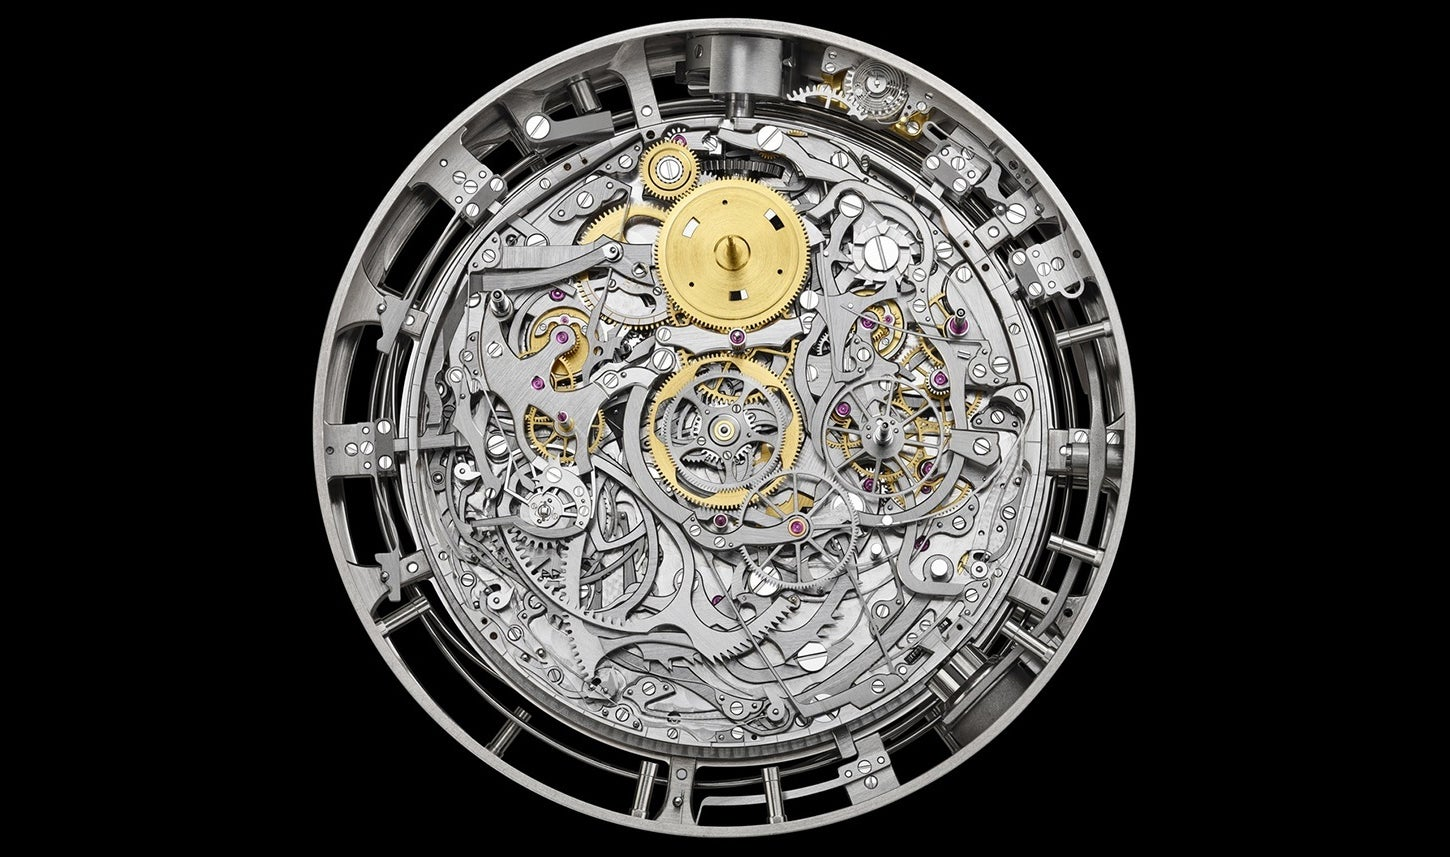 This Is the Most Complicated Pocket Watch Ever Made